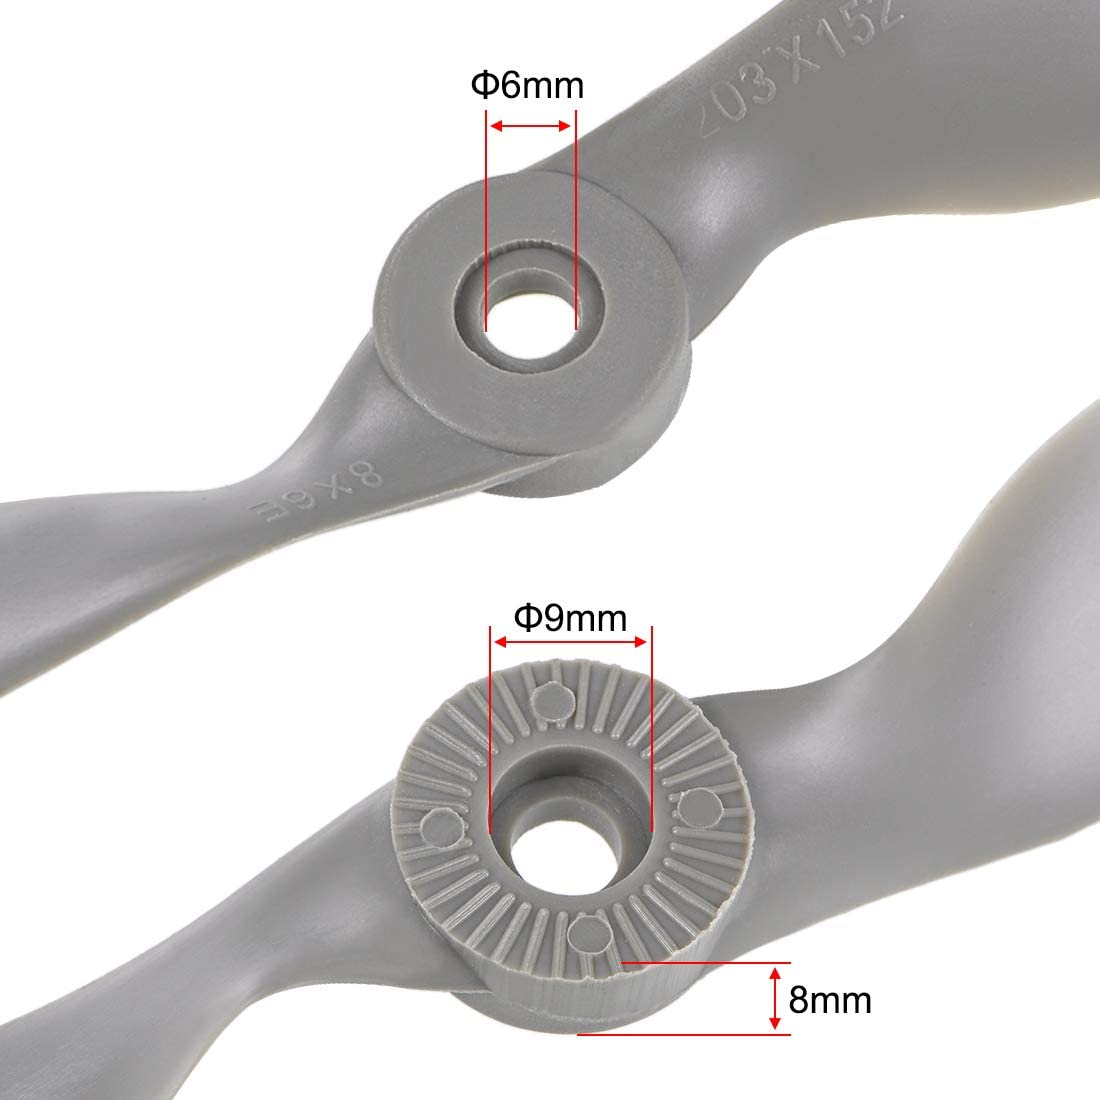 uxcell RC Propellers CW 10x7 Inch 2-Vane for Airplane Toy Nylon Gray 3Pcs with Adapter Rings